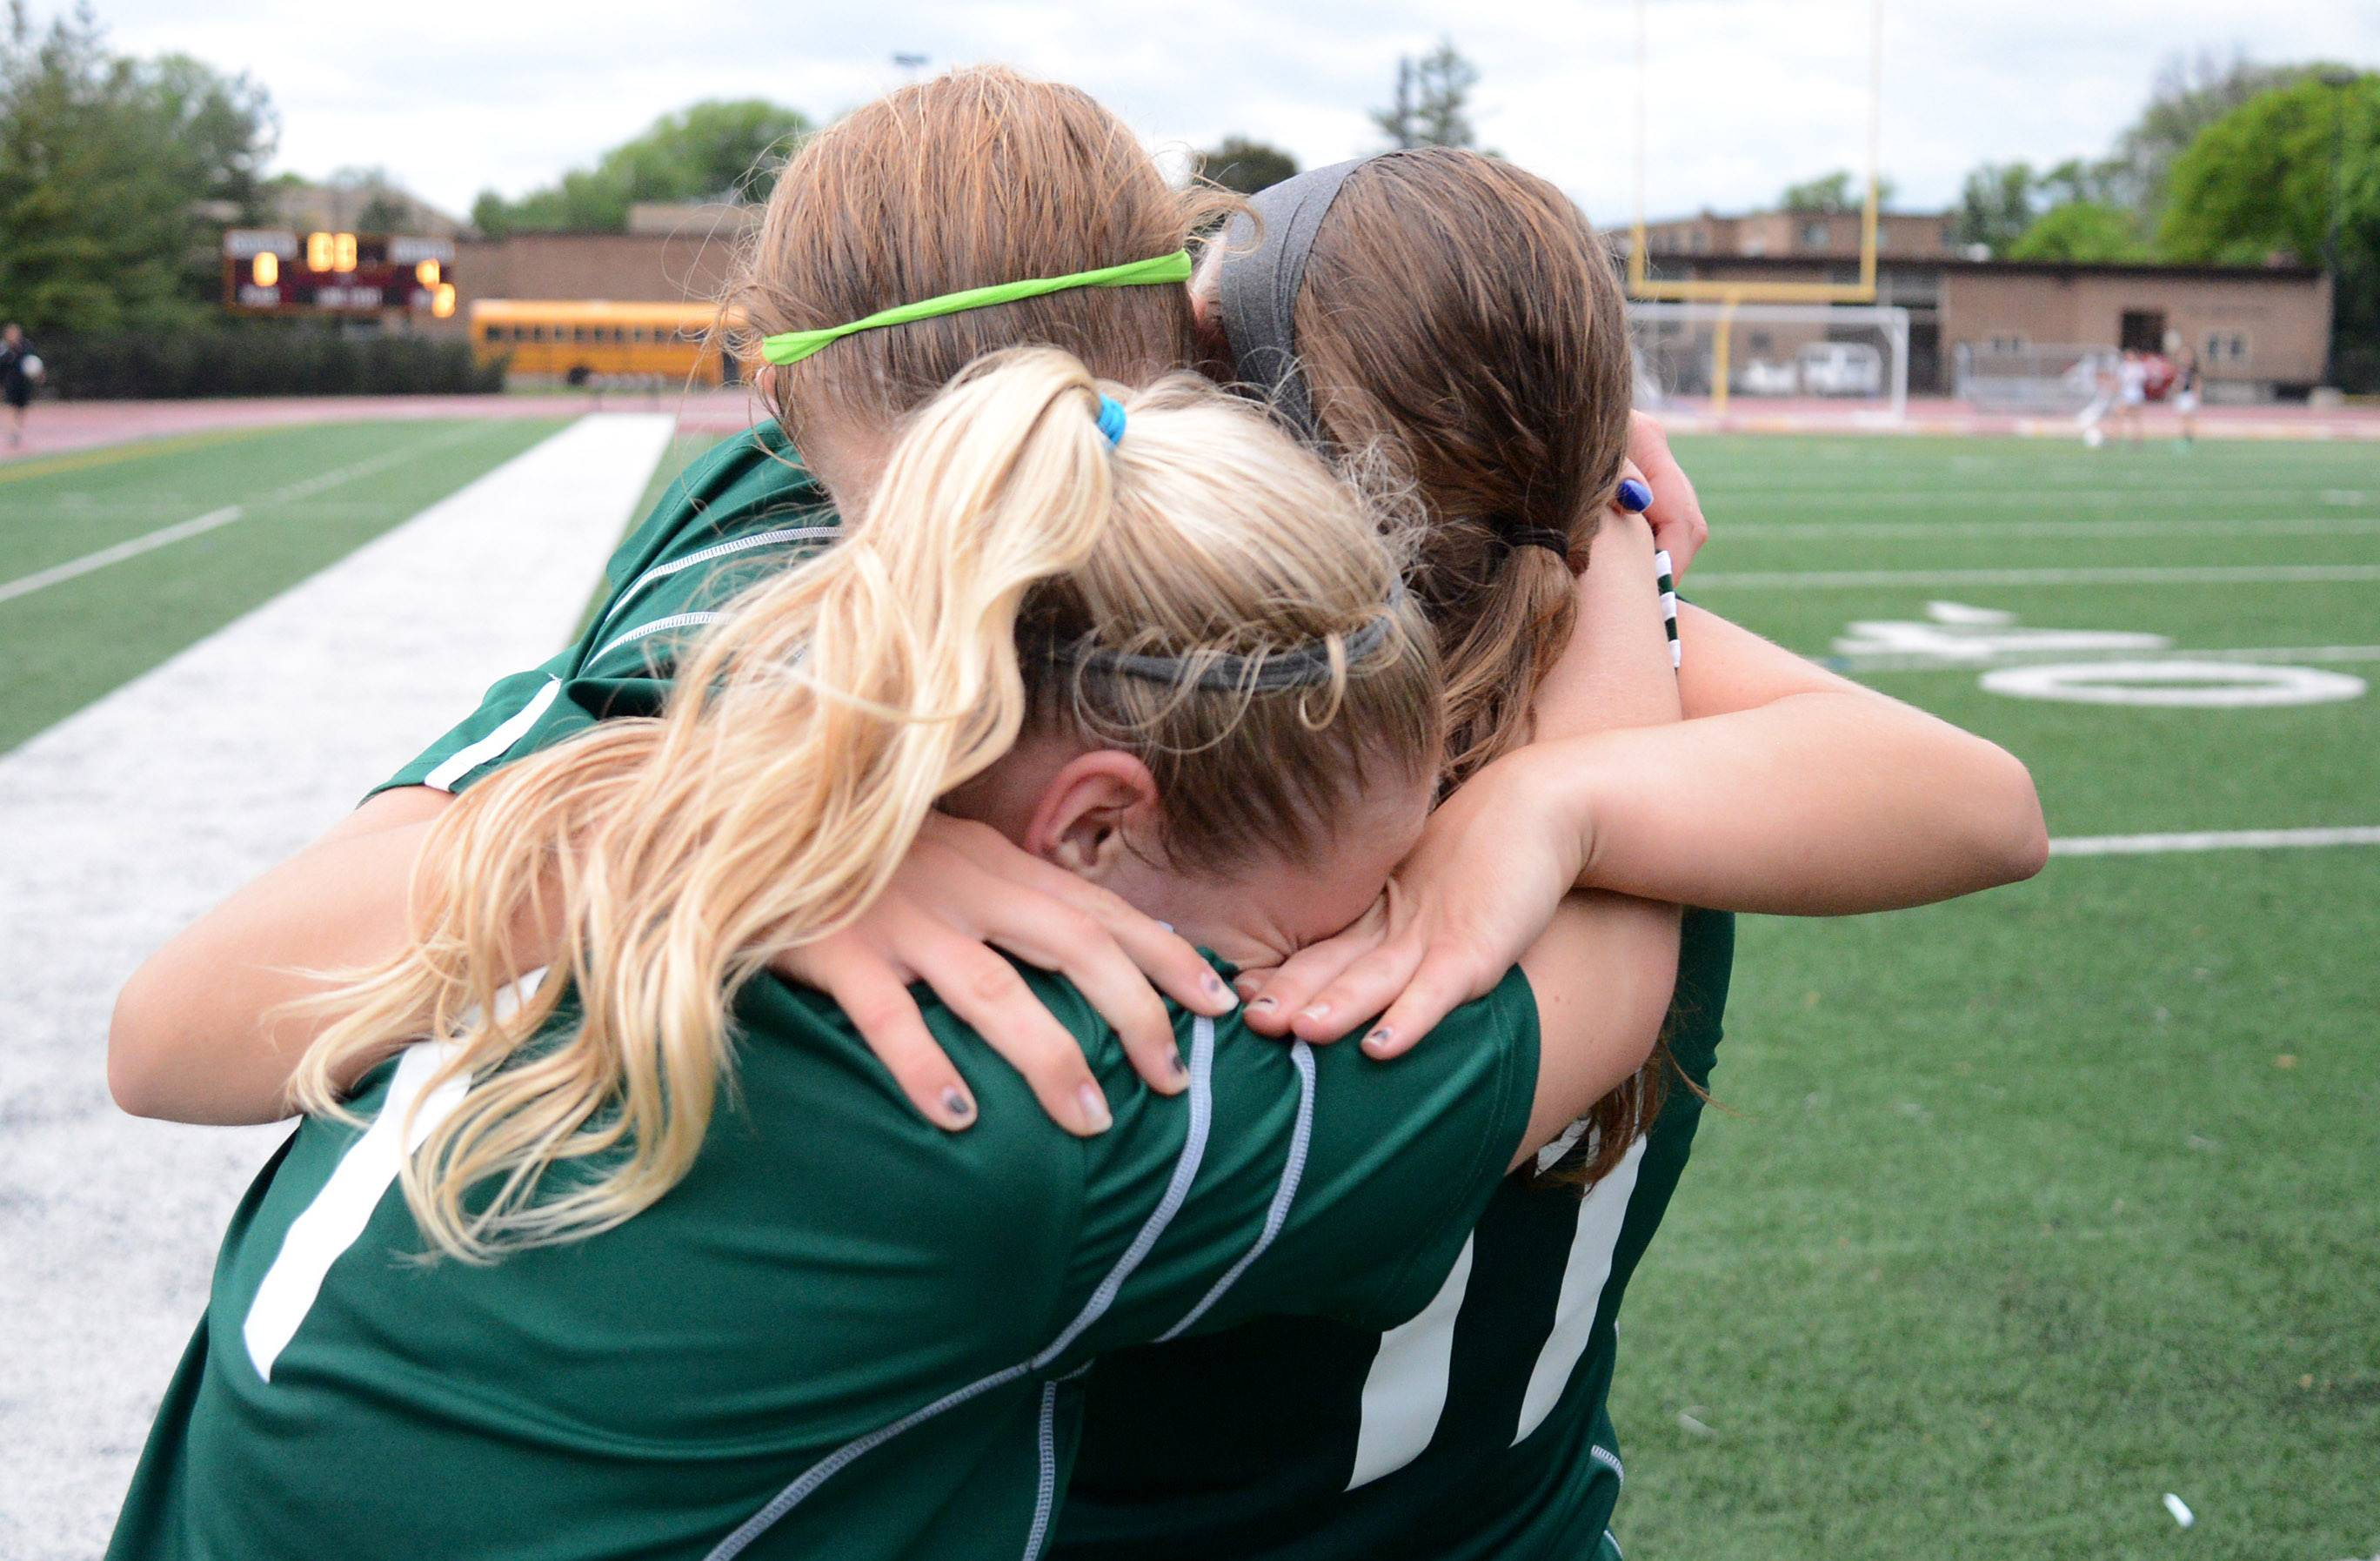 St. Edward seniors Corey Lepoudre, (center, bottom) Emily Witt (center top) and Allison Kruk, (right) celebrate their Class 1A supersectional win over Chicago Latin at Concordia University in River Forest on Tuesday.